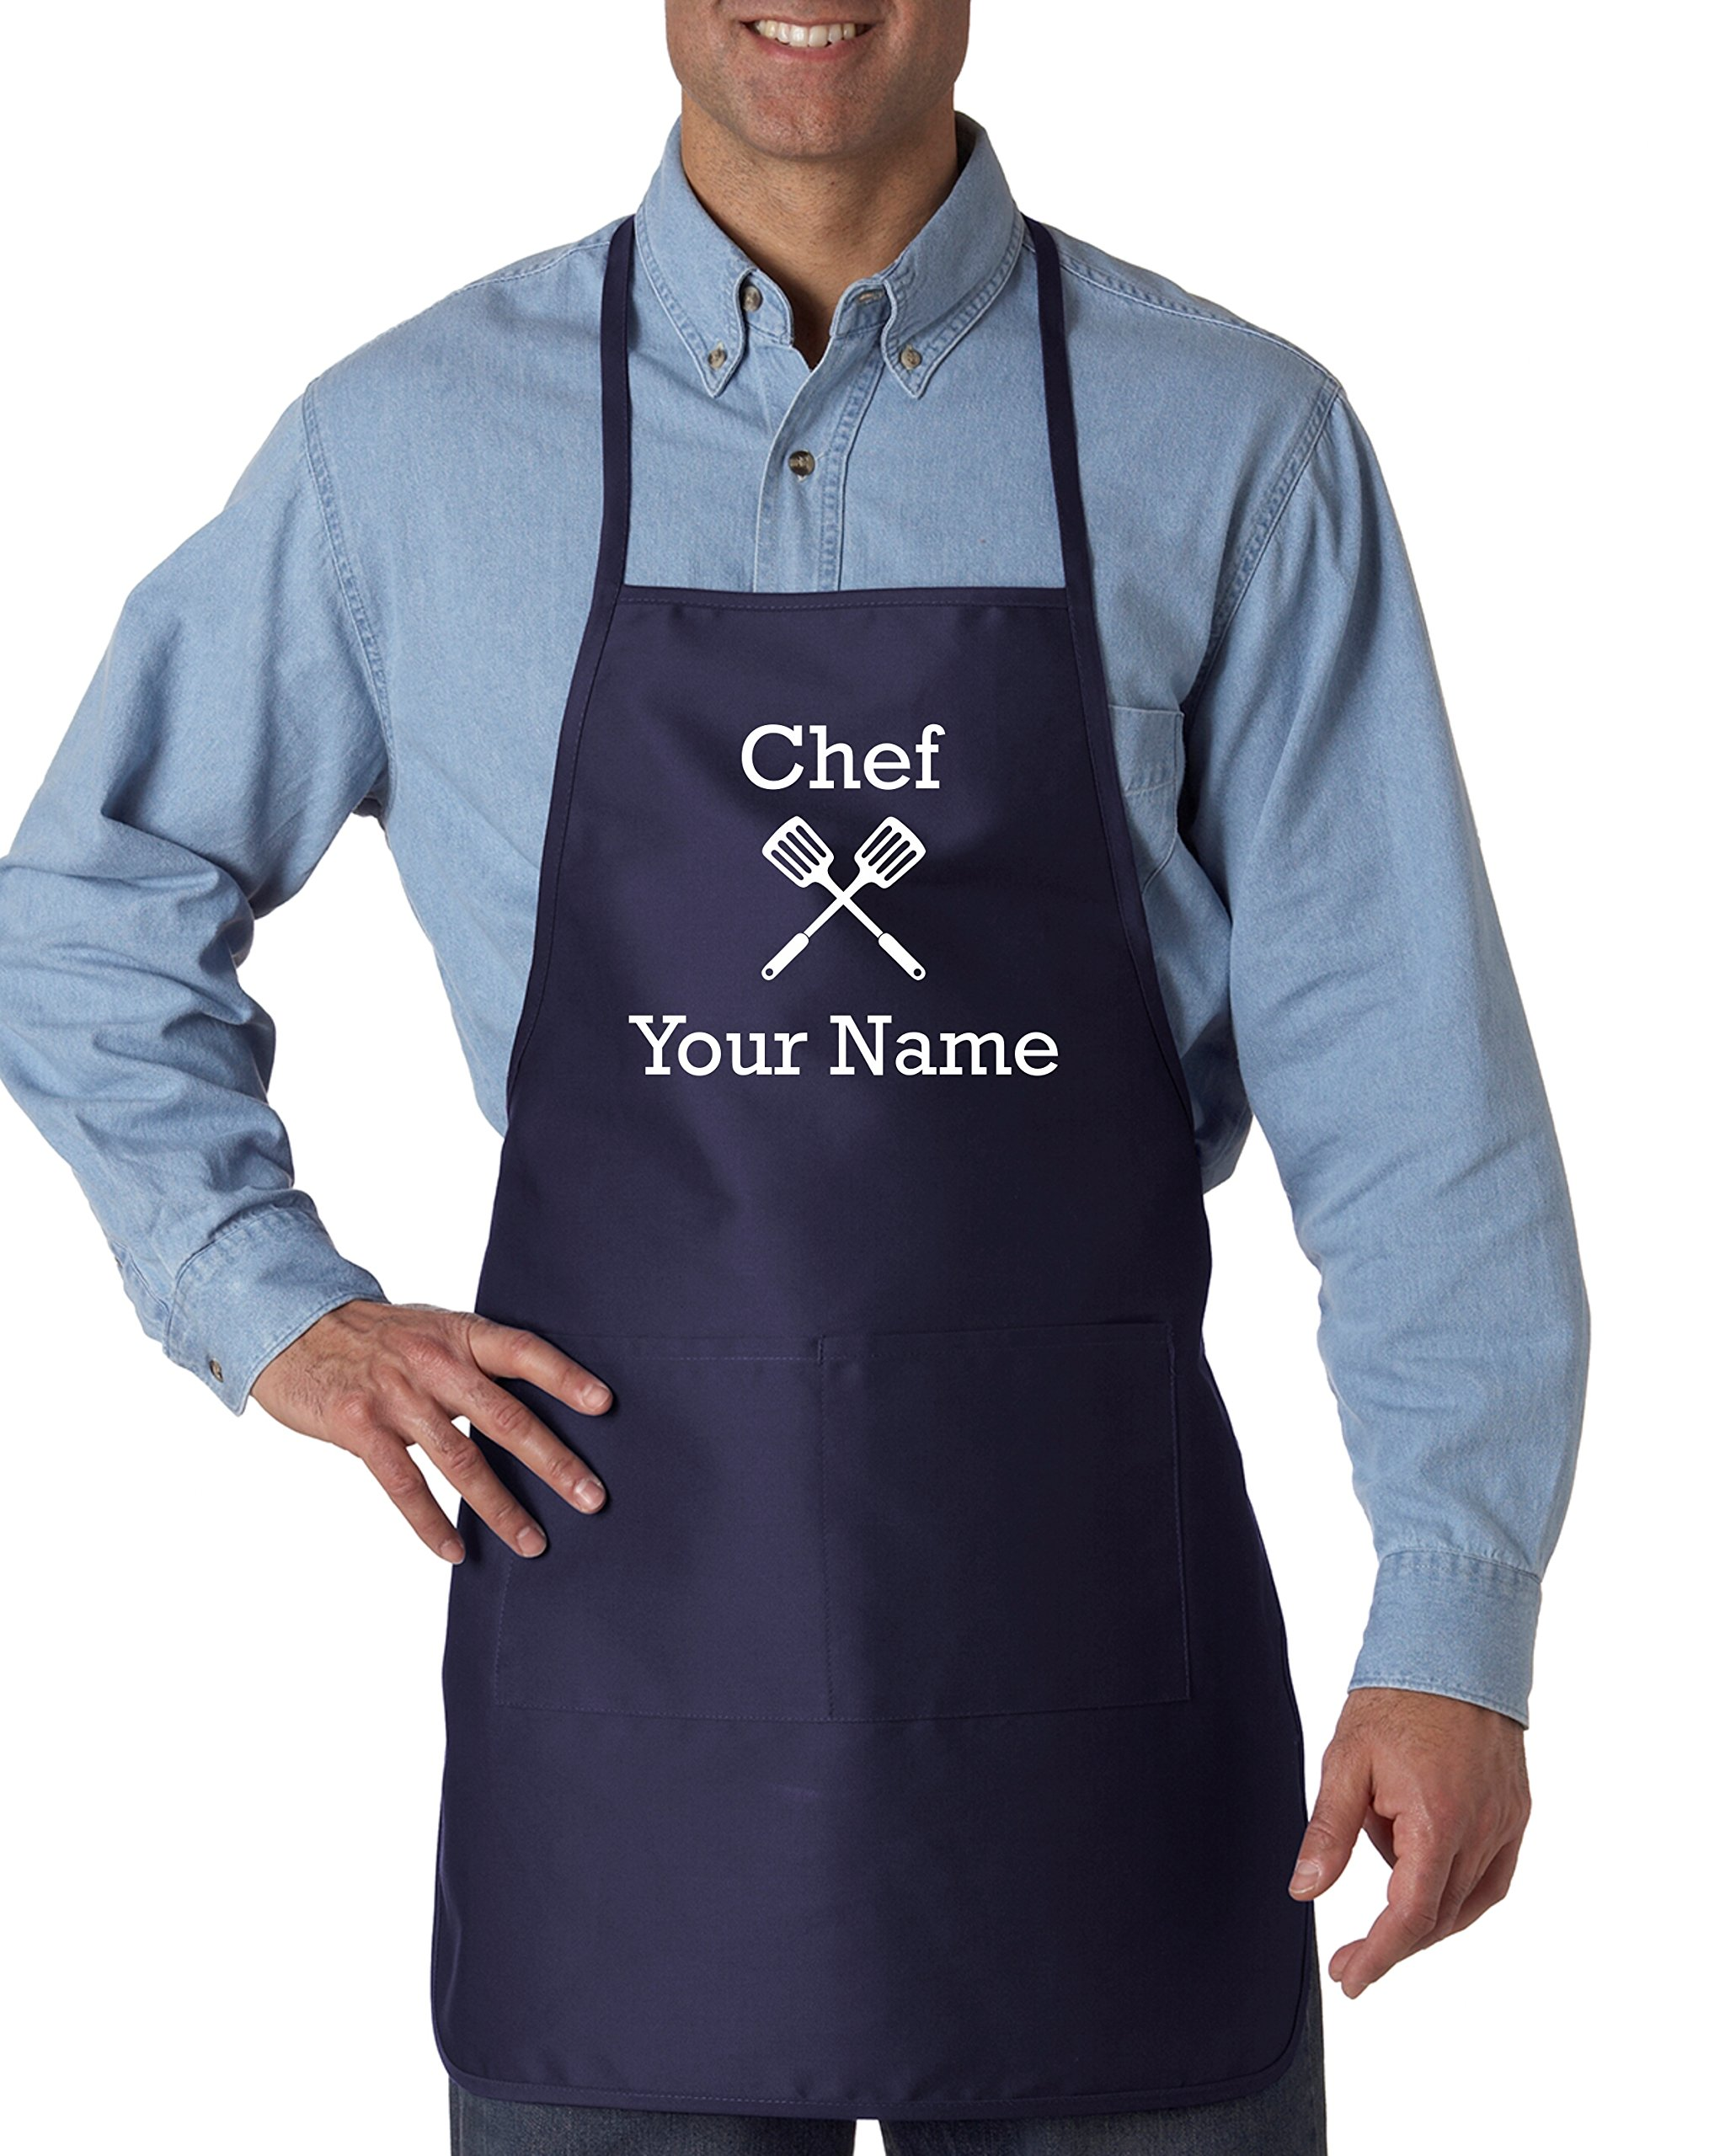 Hot4TShirts Personalized Chef's Cooking Apron for Men Kitchen, BBQ Grill   Breathable, Comfortable Fabric   Funny Custom Designs, 2 Front Pockets   Machine Washable (Navy)